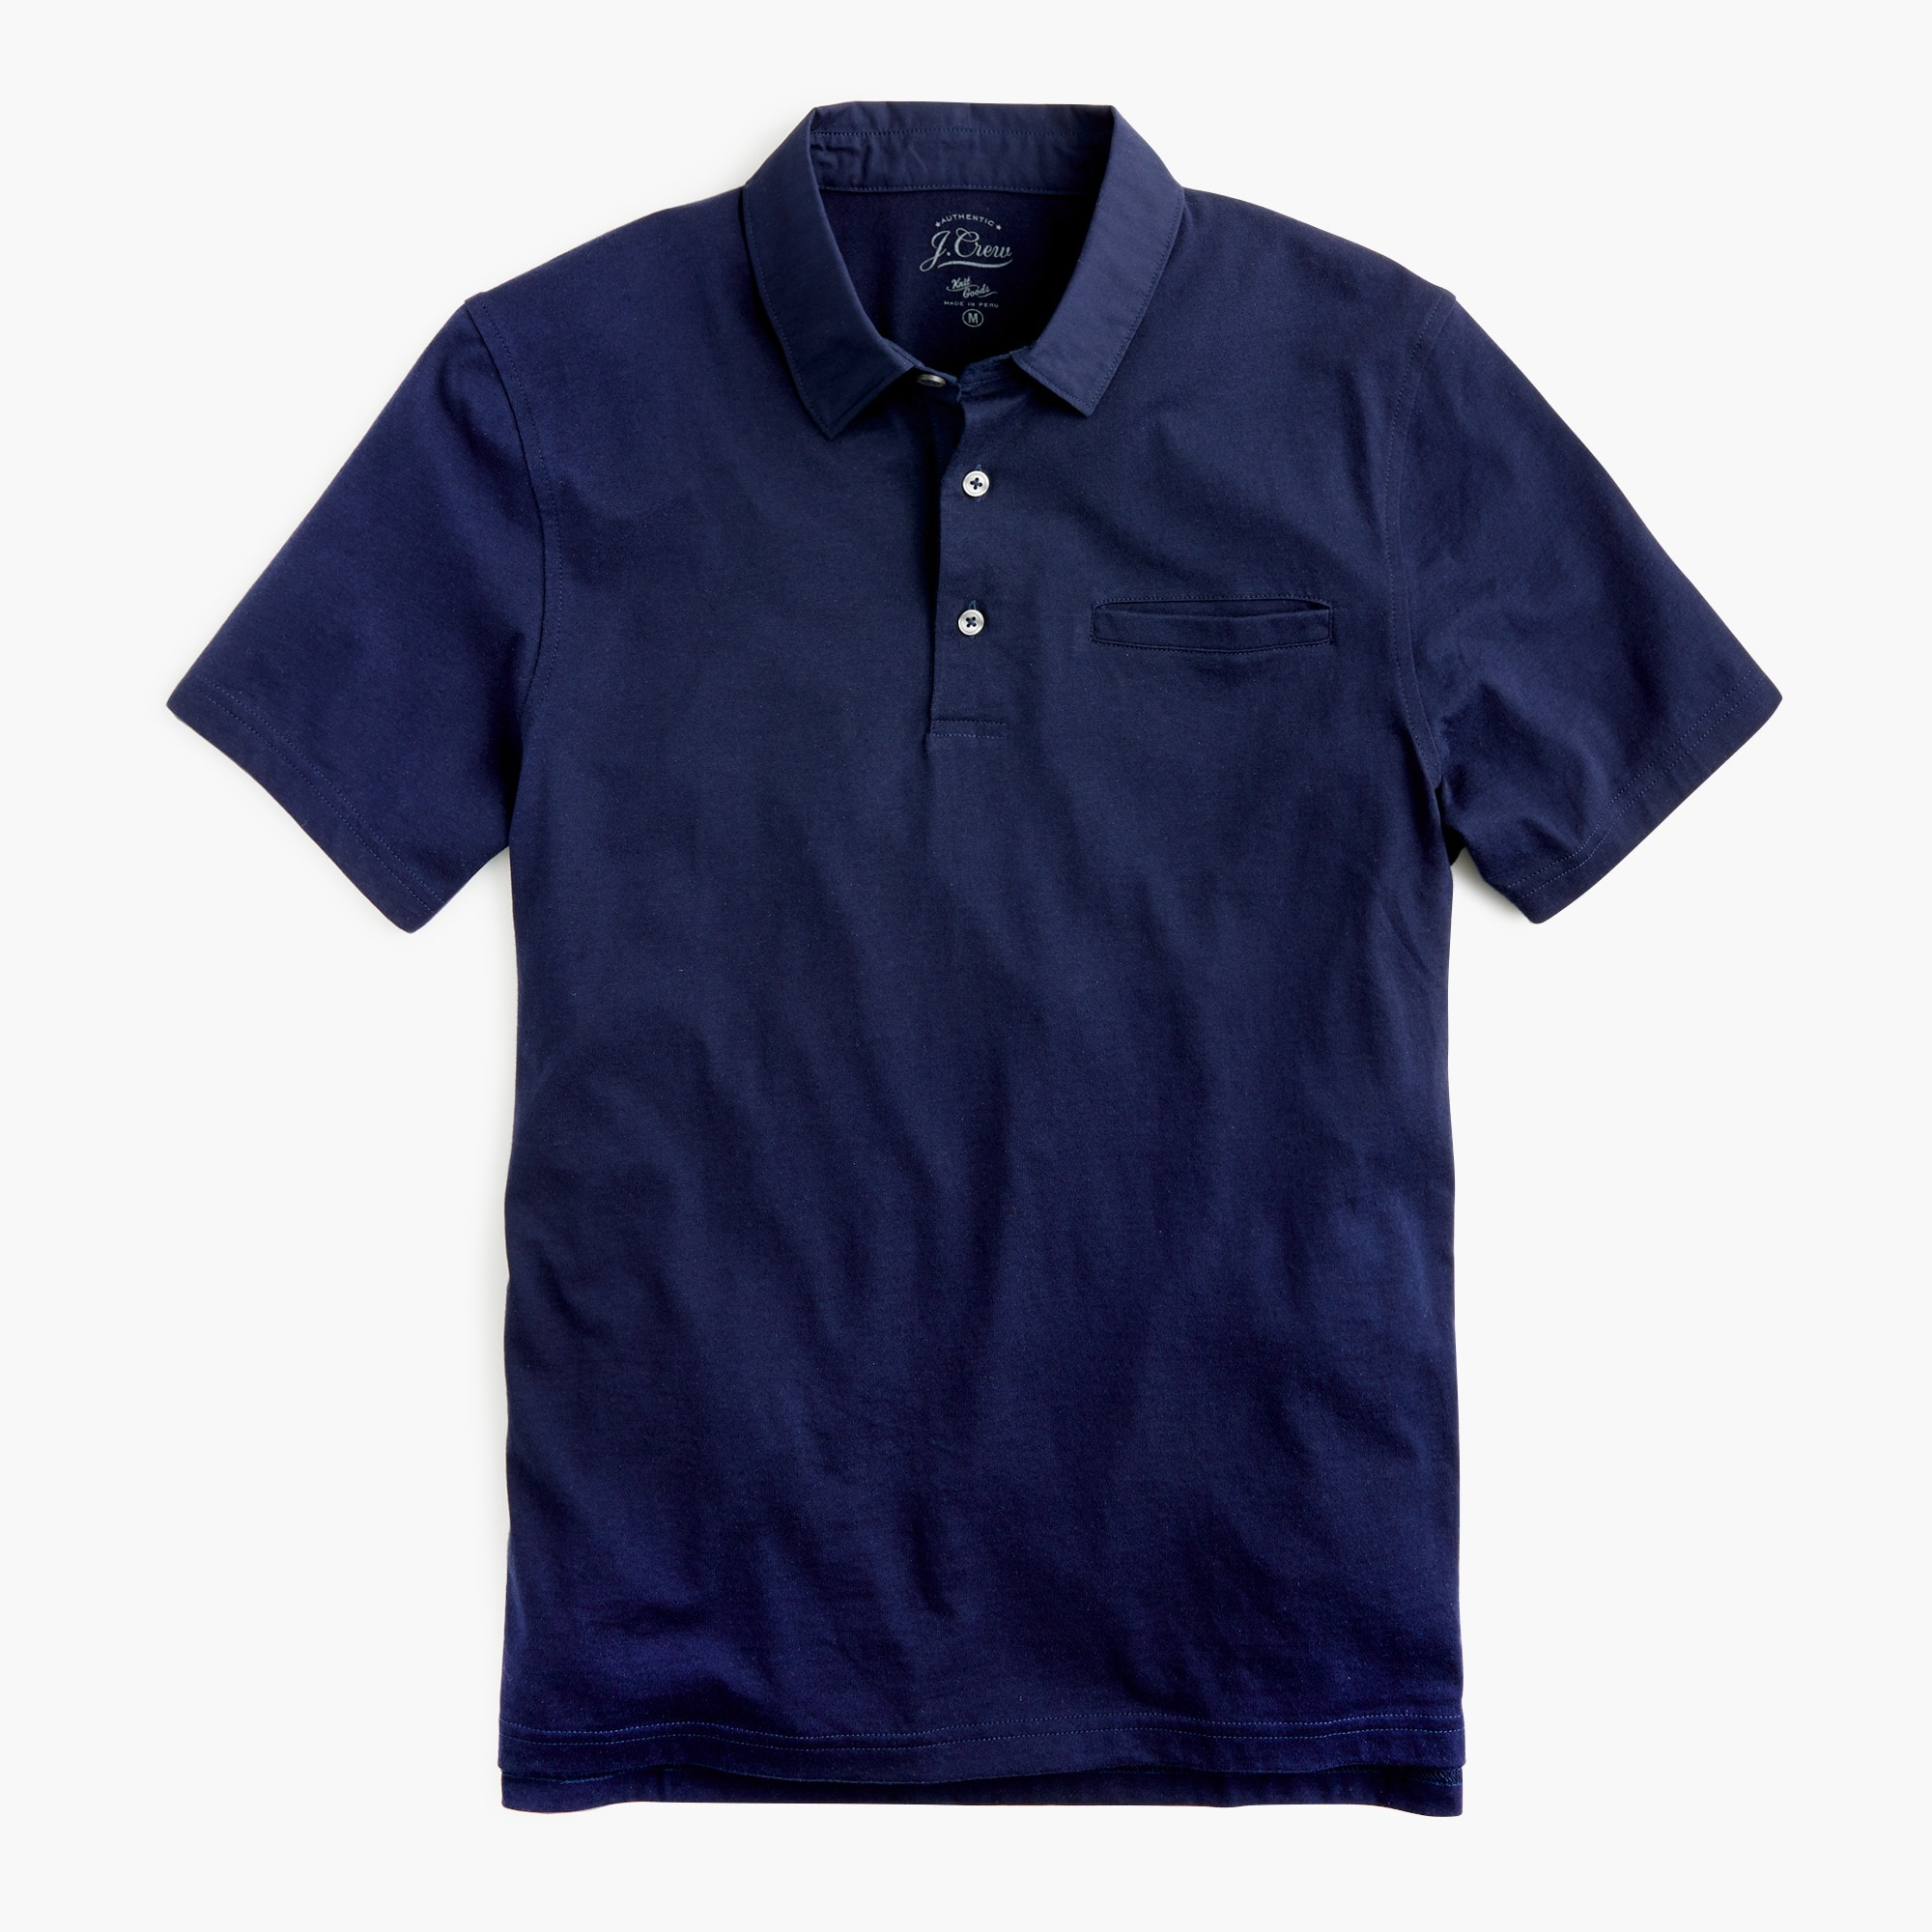 Image 2 for Woven-collar polo in Pima cotton